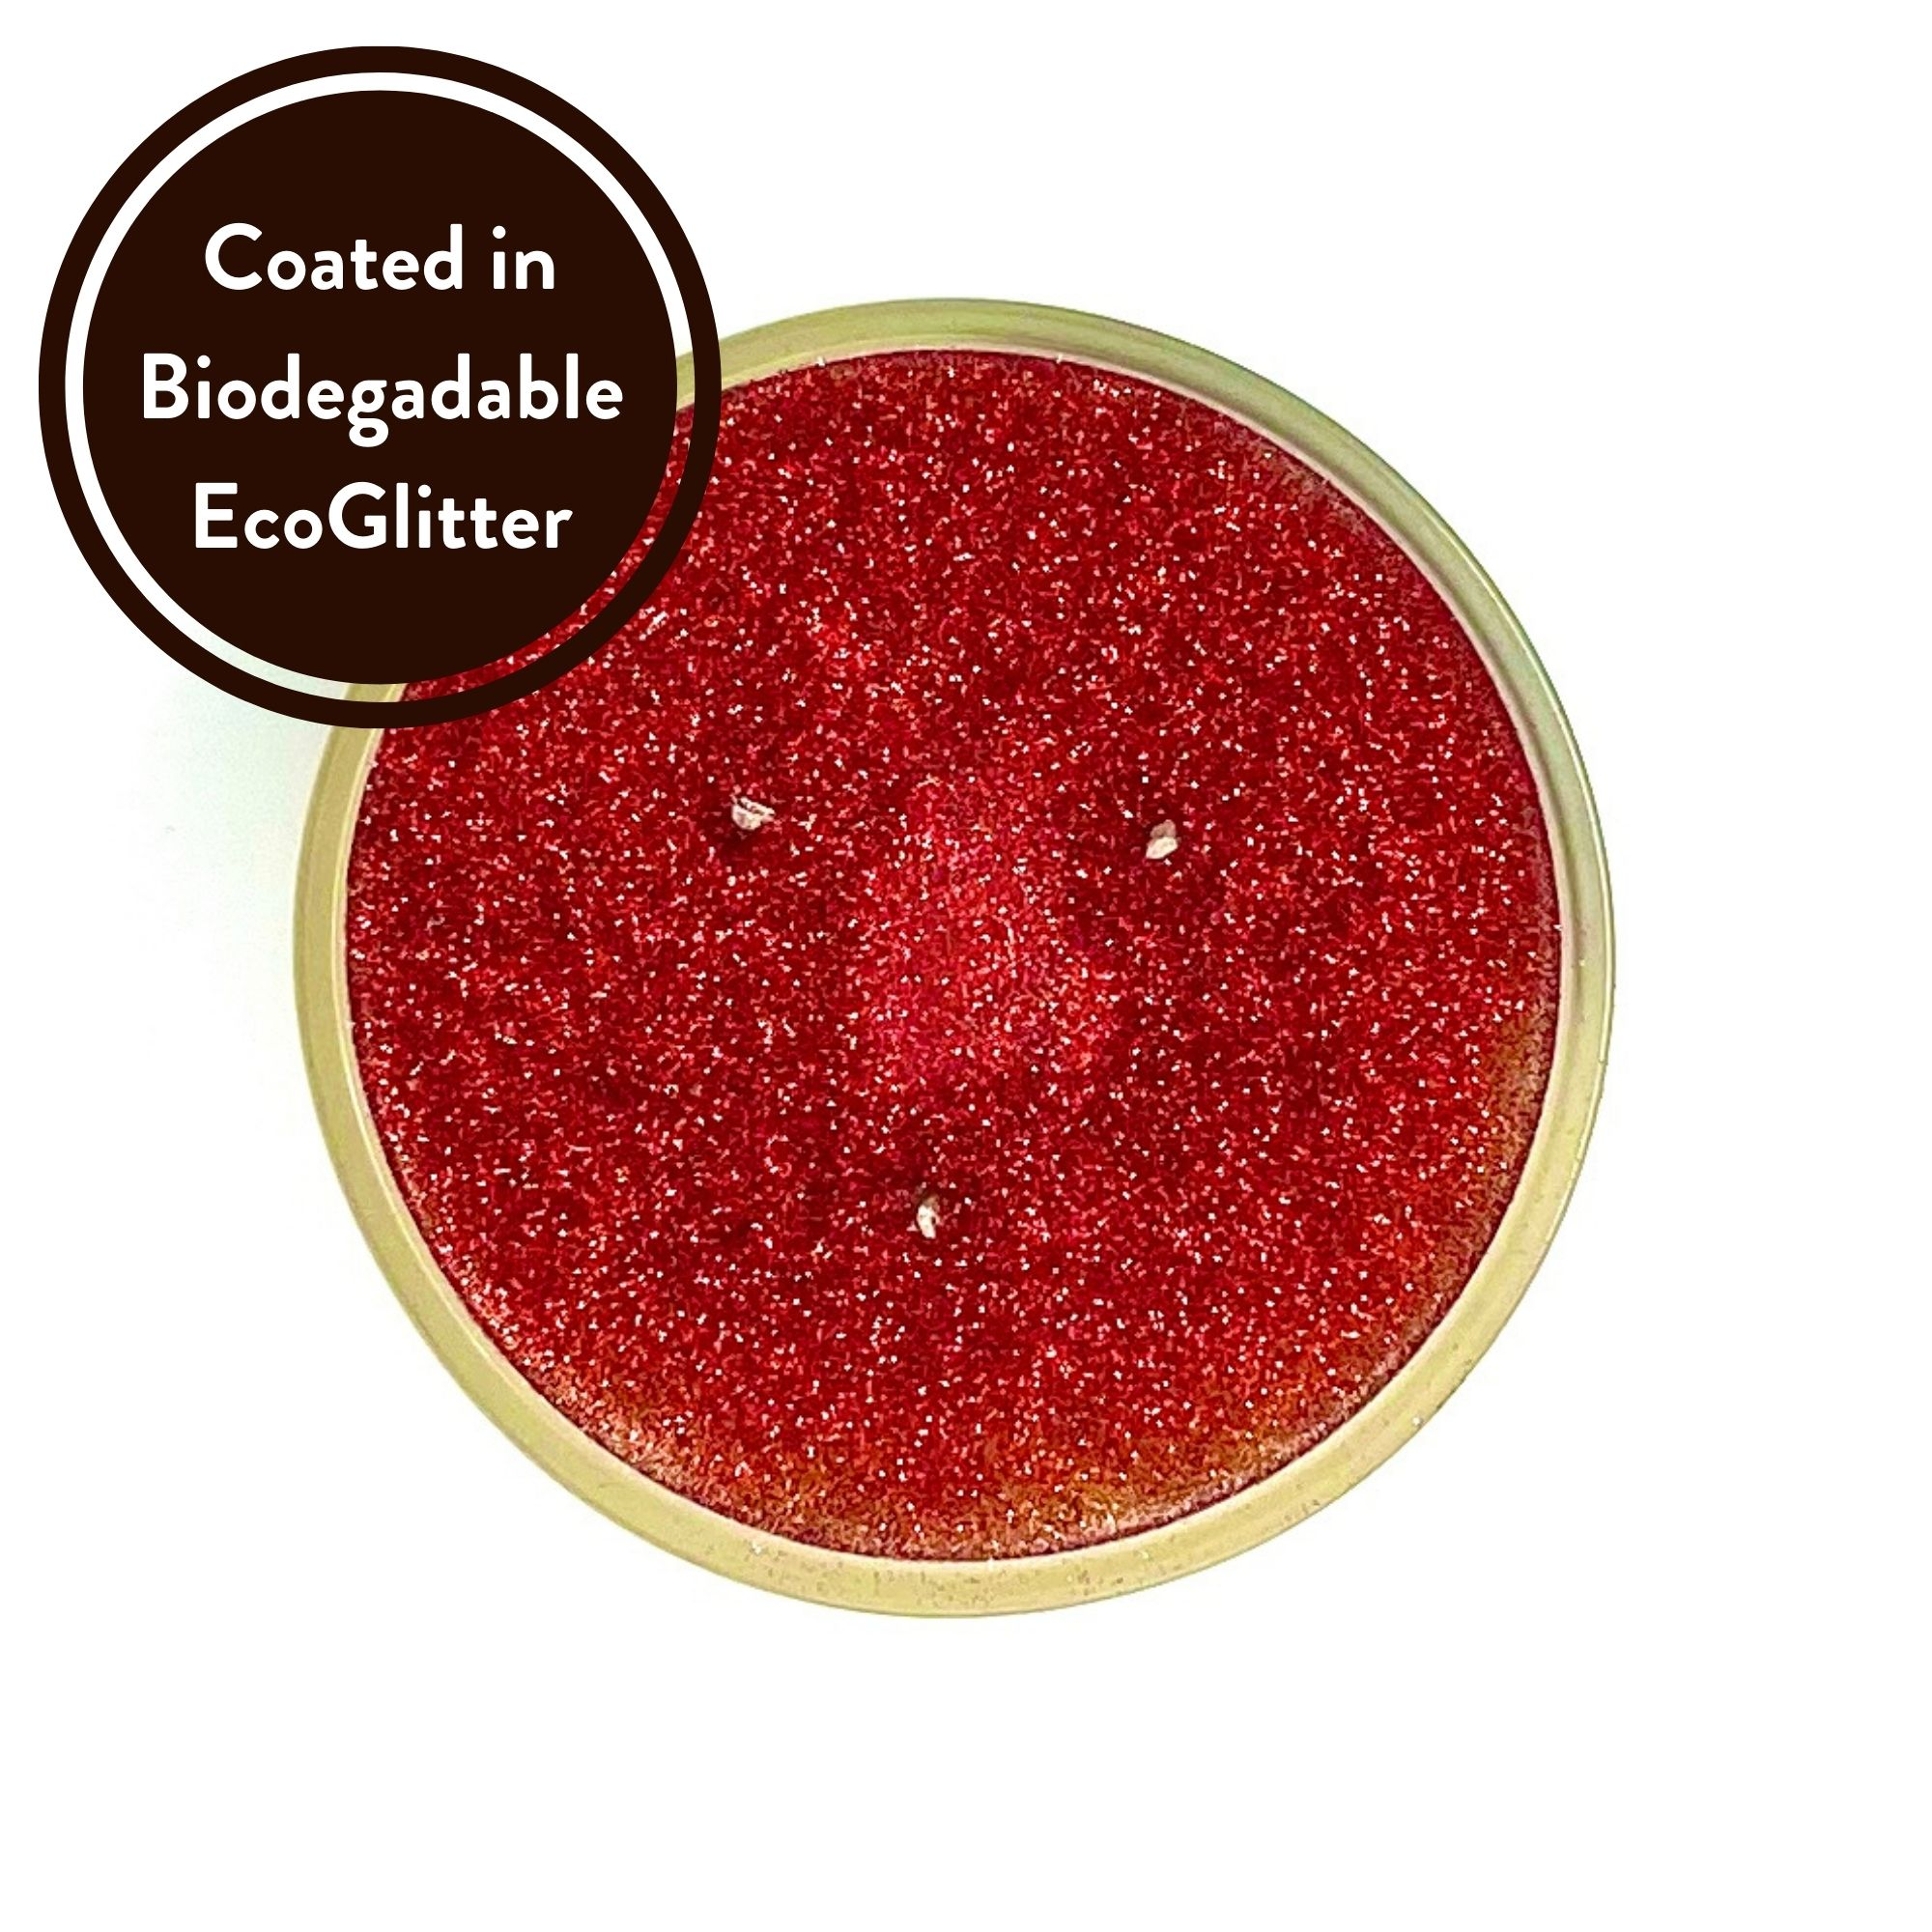 Mulled Wine Three wick scented candle coated in biodegradable Eco Glitter Top view by Twoodle Co Natural Home Scents